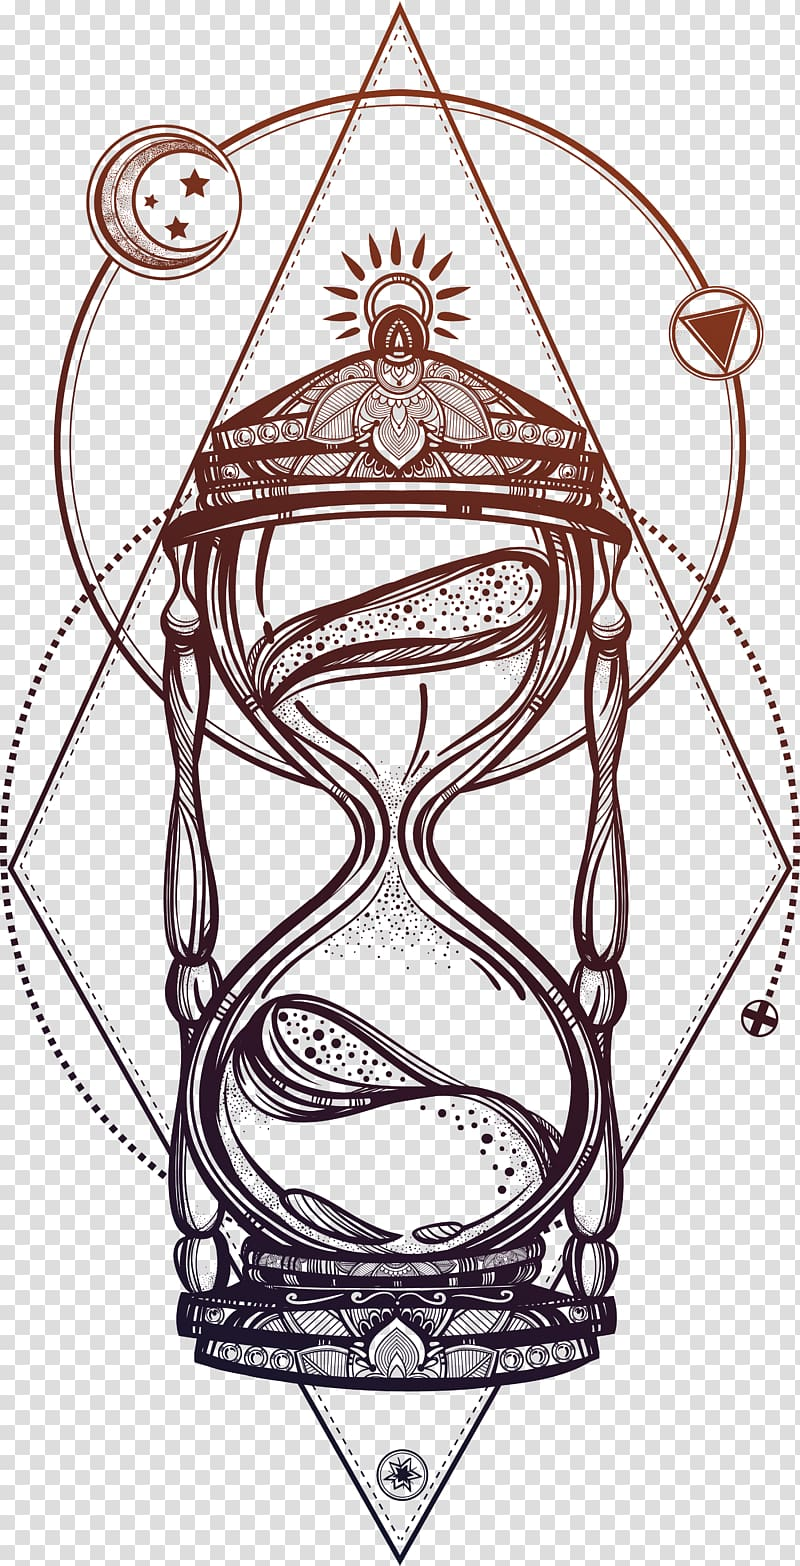 hight resolution of black and brown hour glass illustration drawing hourglass beautiful hand painted hourglass transparent background png clipart